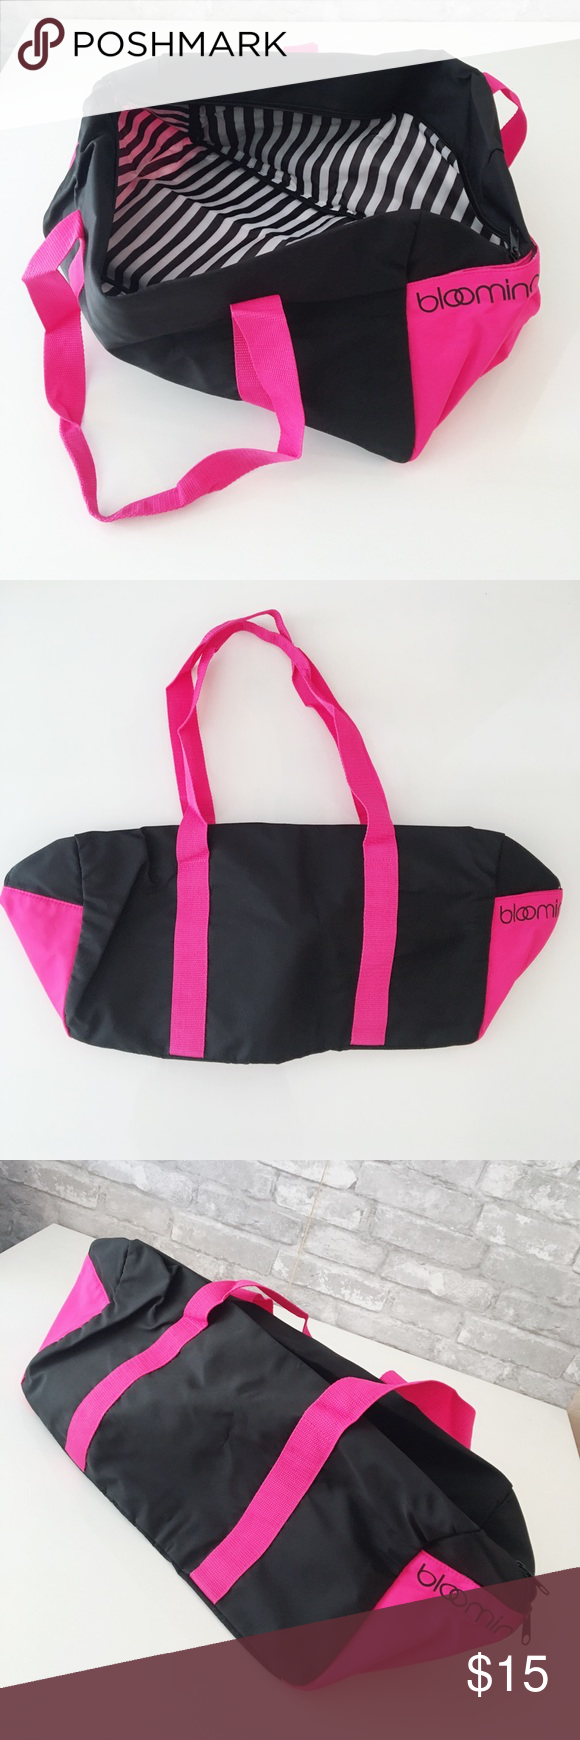 Brand New Bloomingdale s Gym Bag 100% new Length around 25.5in  width 10in  3f8c5346d665c